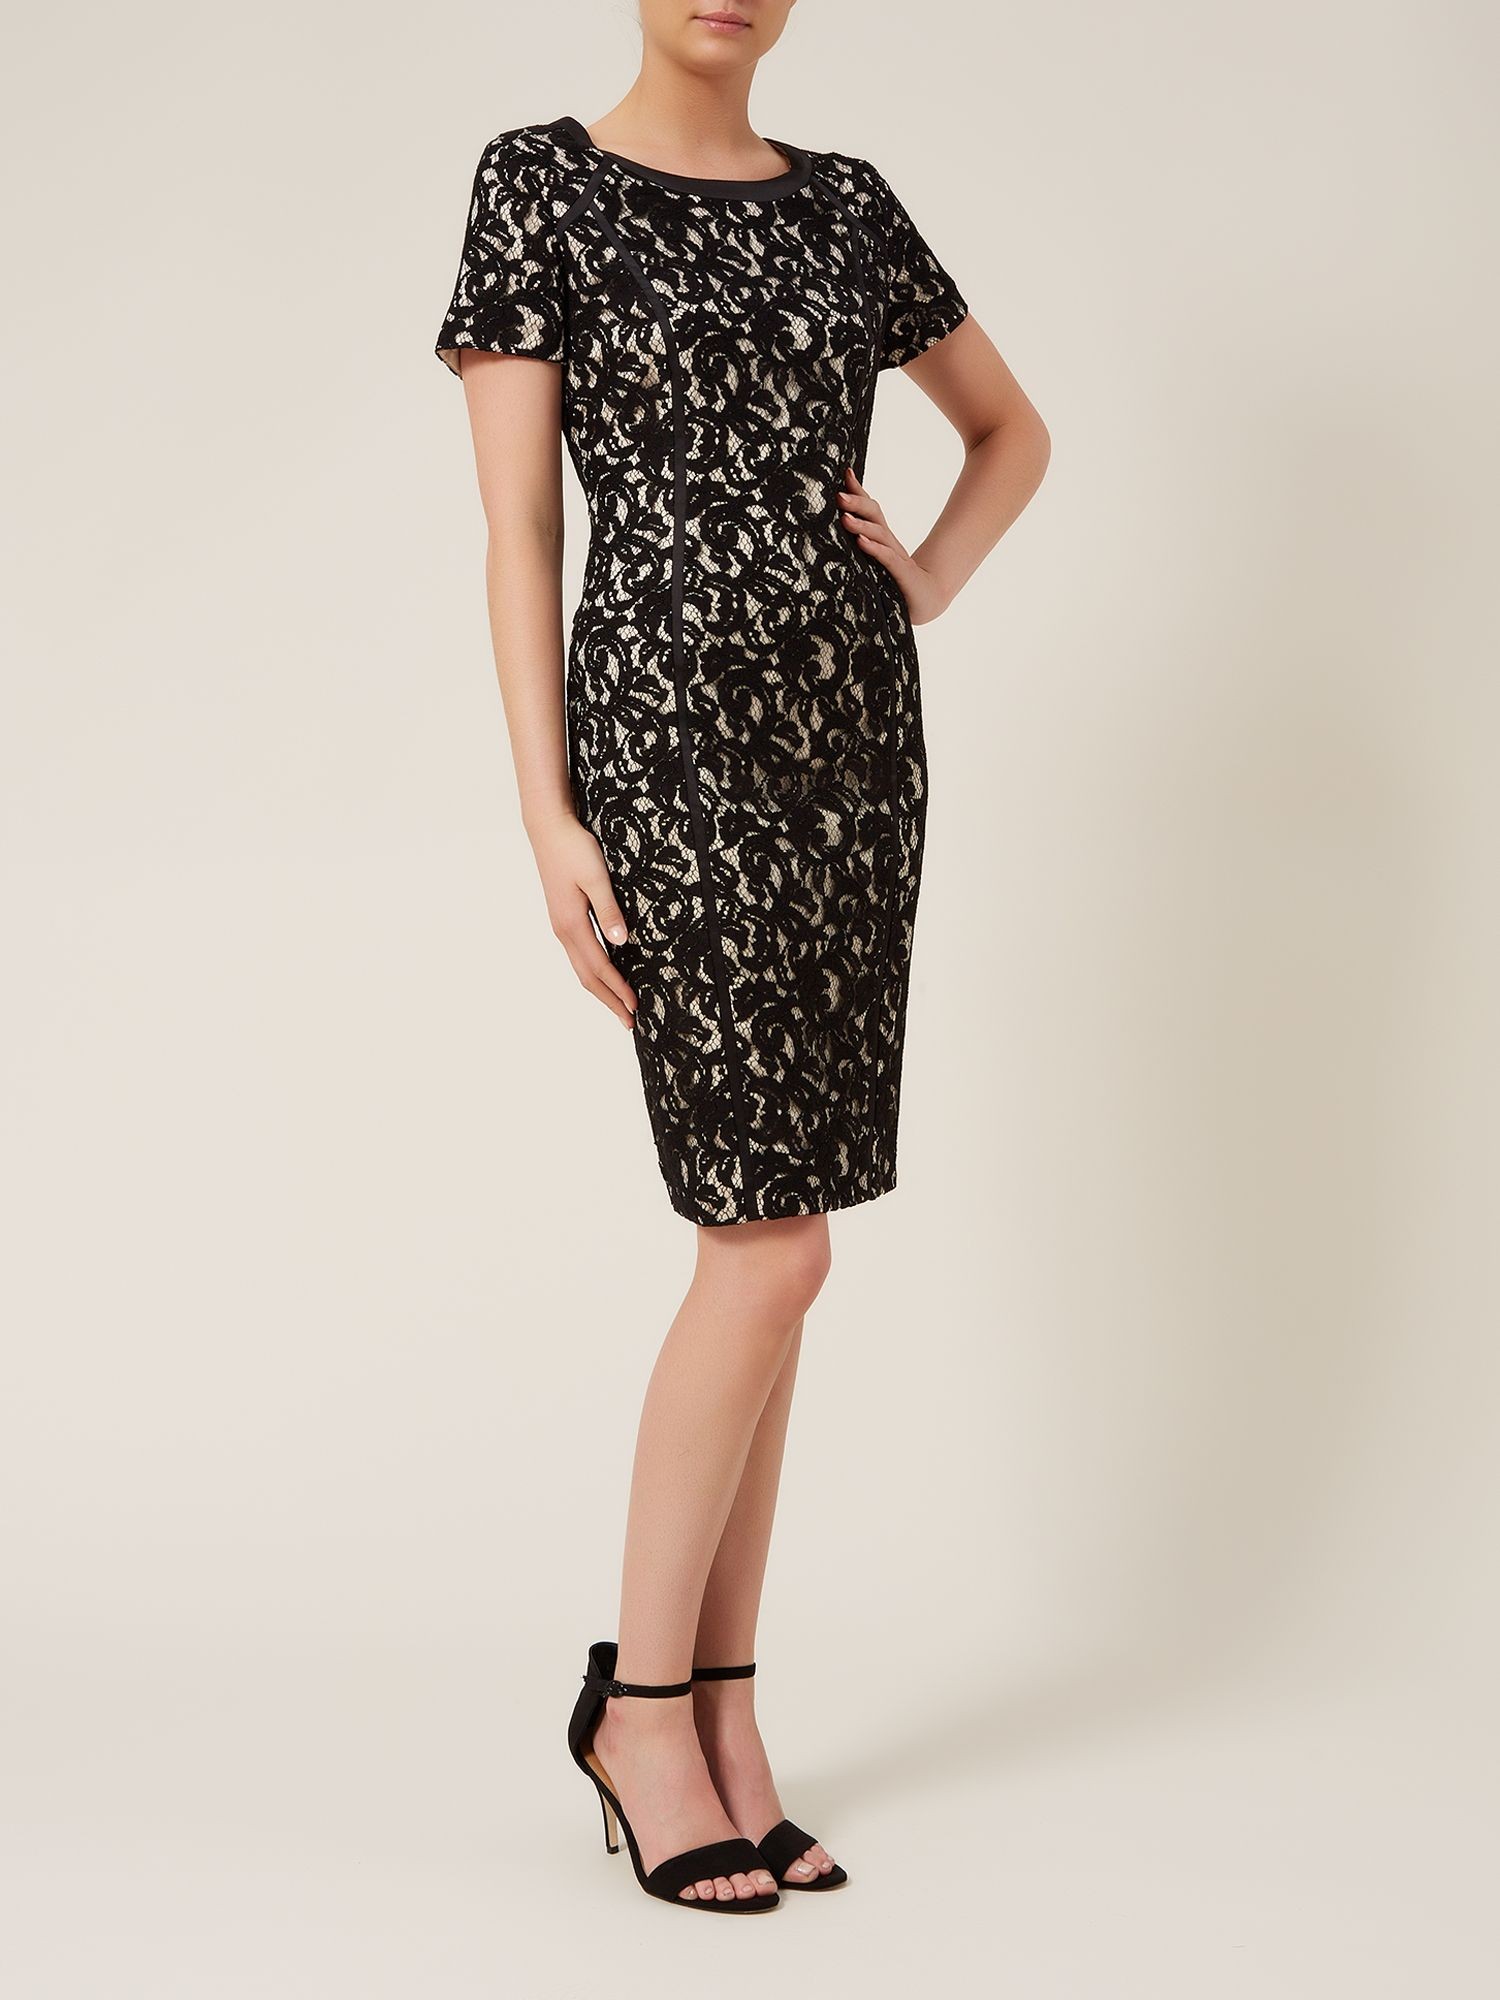 Champagne & Black Lace Shift Dress